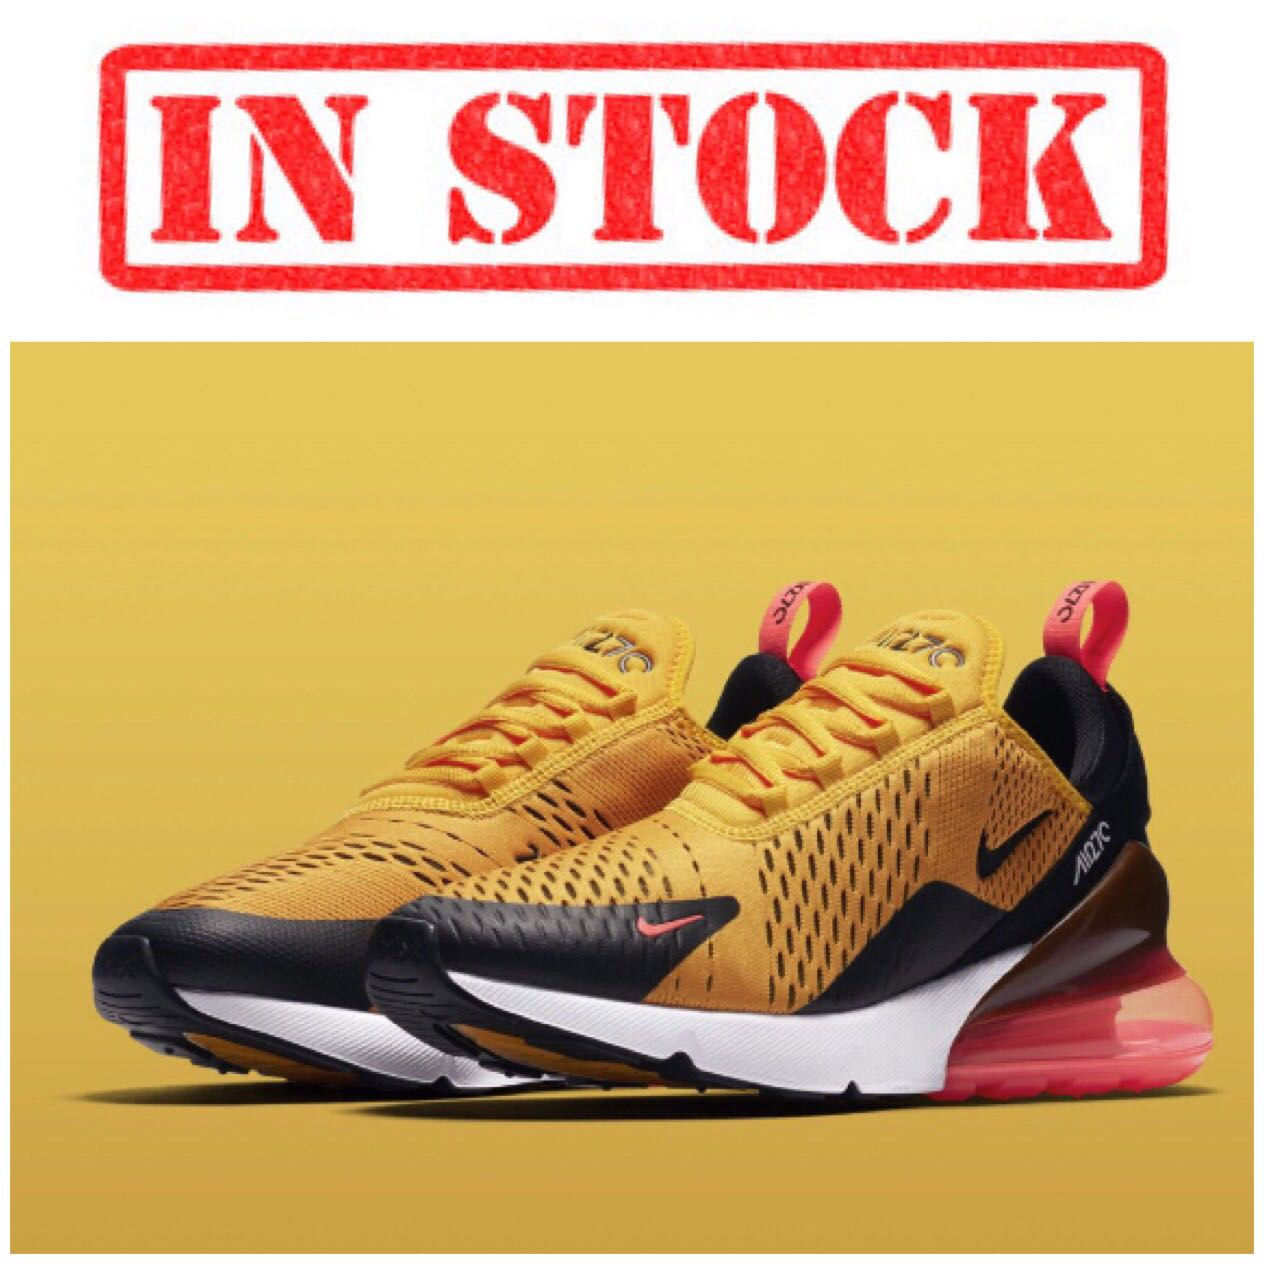 """new style 1ba74 84c3e IN STOCK Men's Nike Air Max 270"""" TIGER"""" 